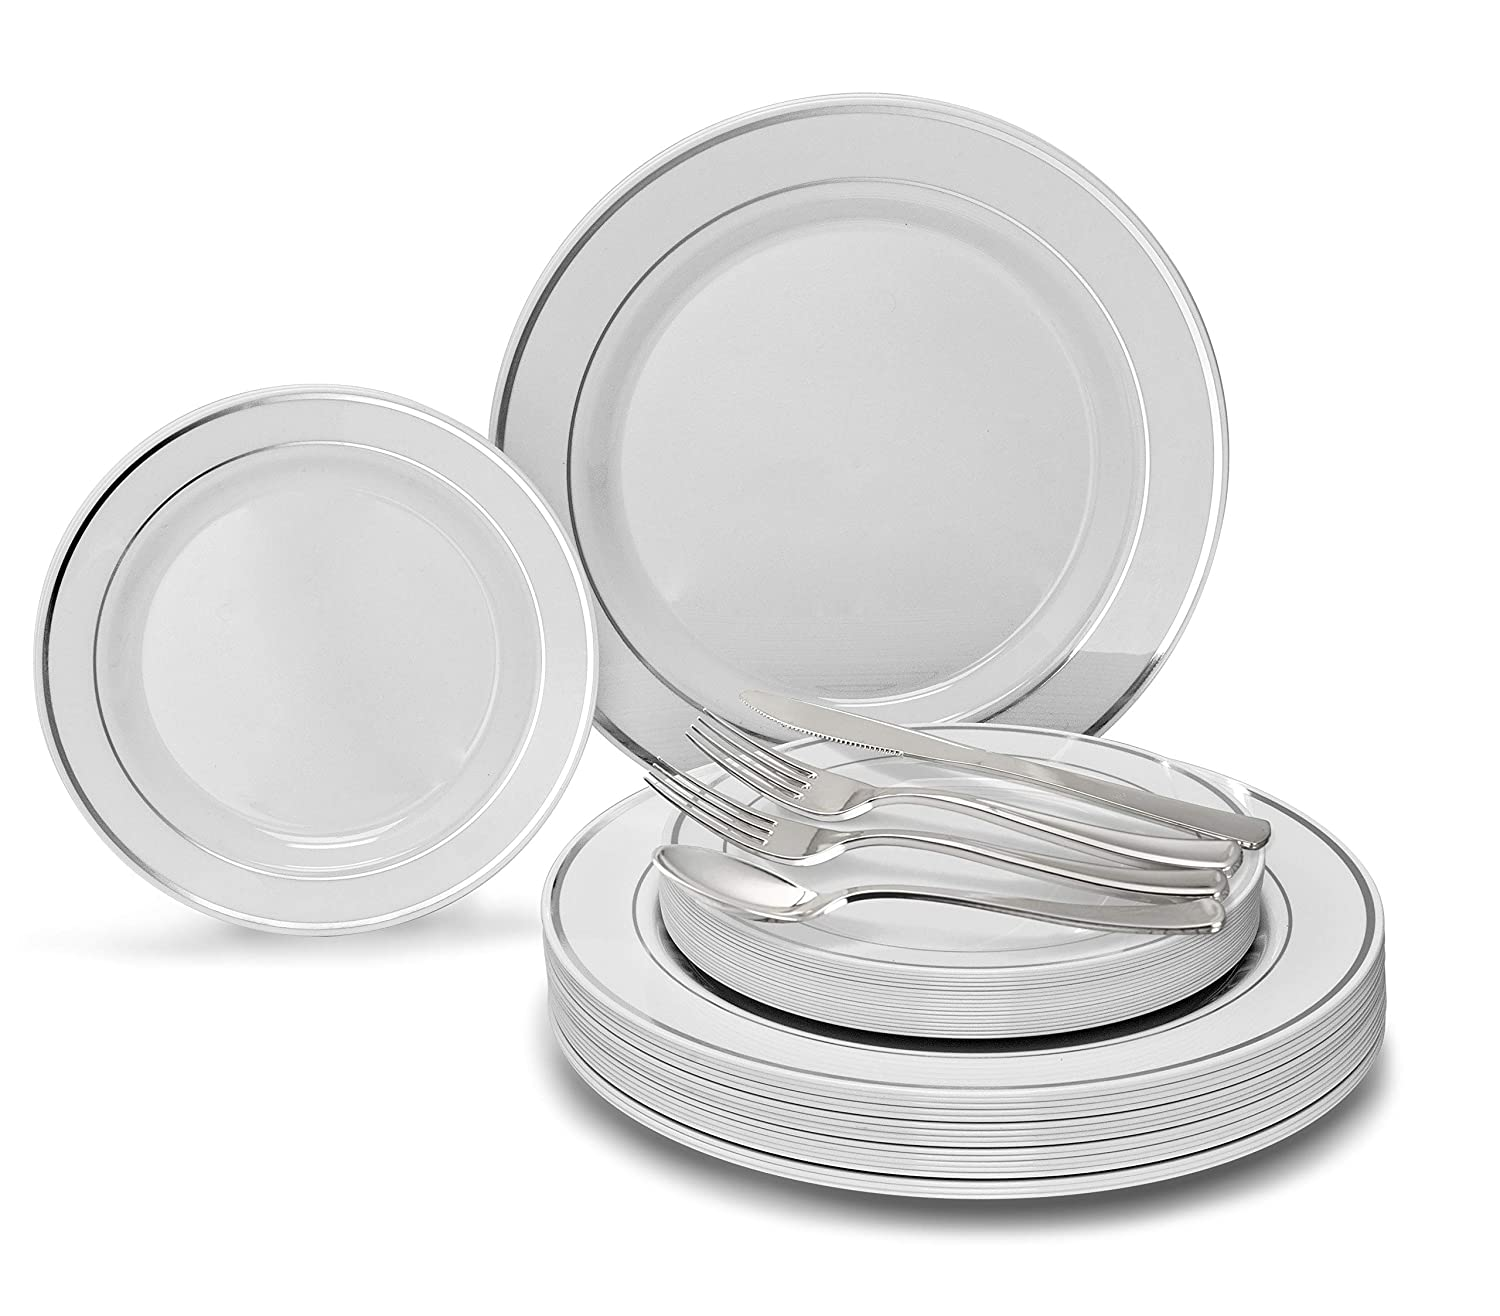 Plastic Wedding Plates.Occasions 720 Pcs 120 Guest Wedding Disposable Plastic Plate And Silverware Combo Set 10 5 7 5 Silverware White Silver Rim Plates Silver